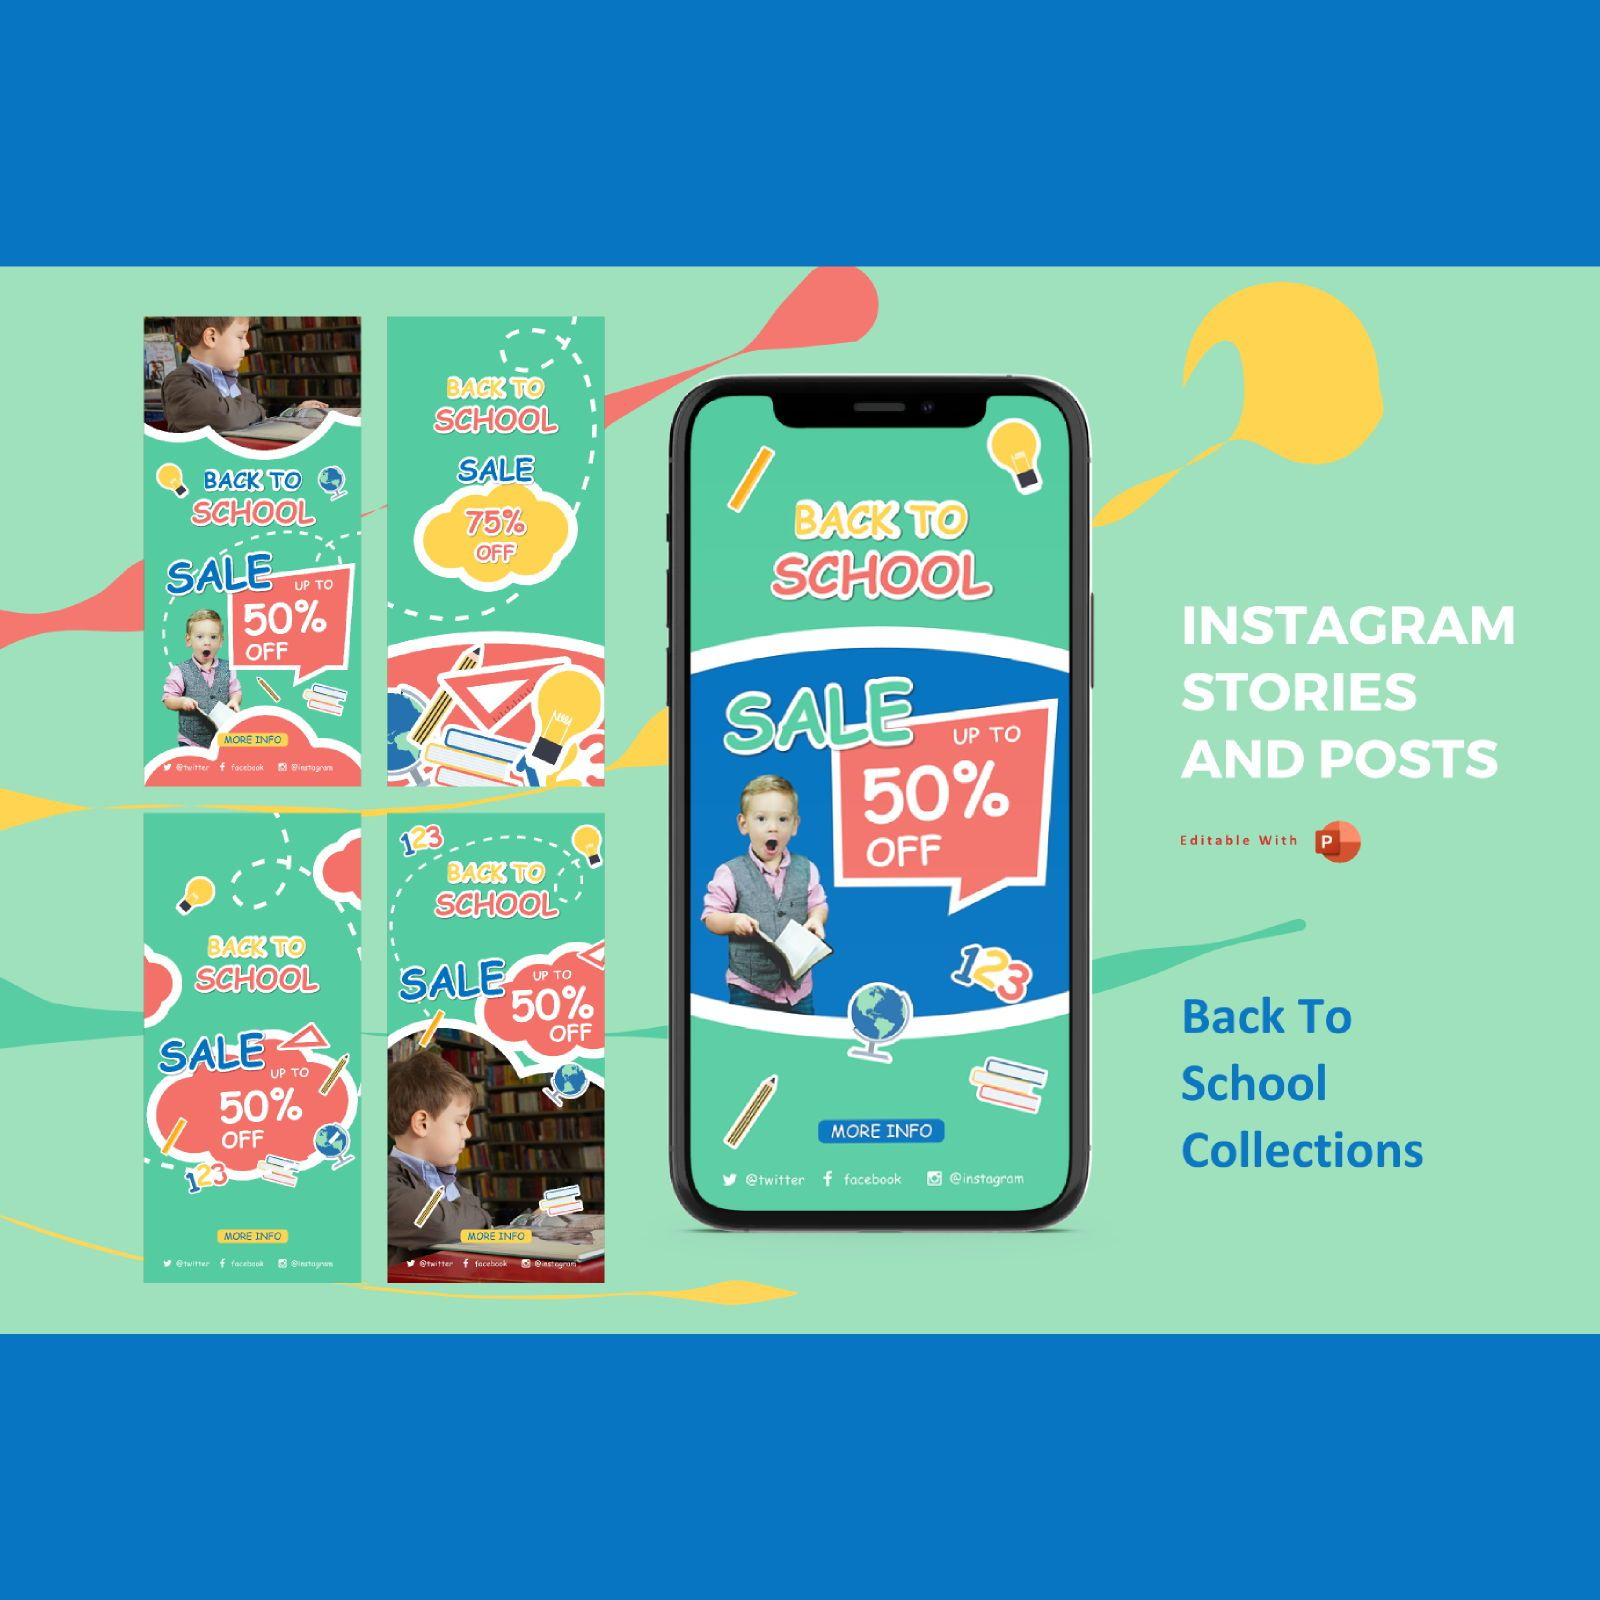 Back to school promotion instagram stories and posts powerpoint template, 07638, Presentation Templates — PoweredTemplate.com